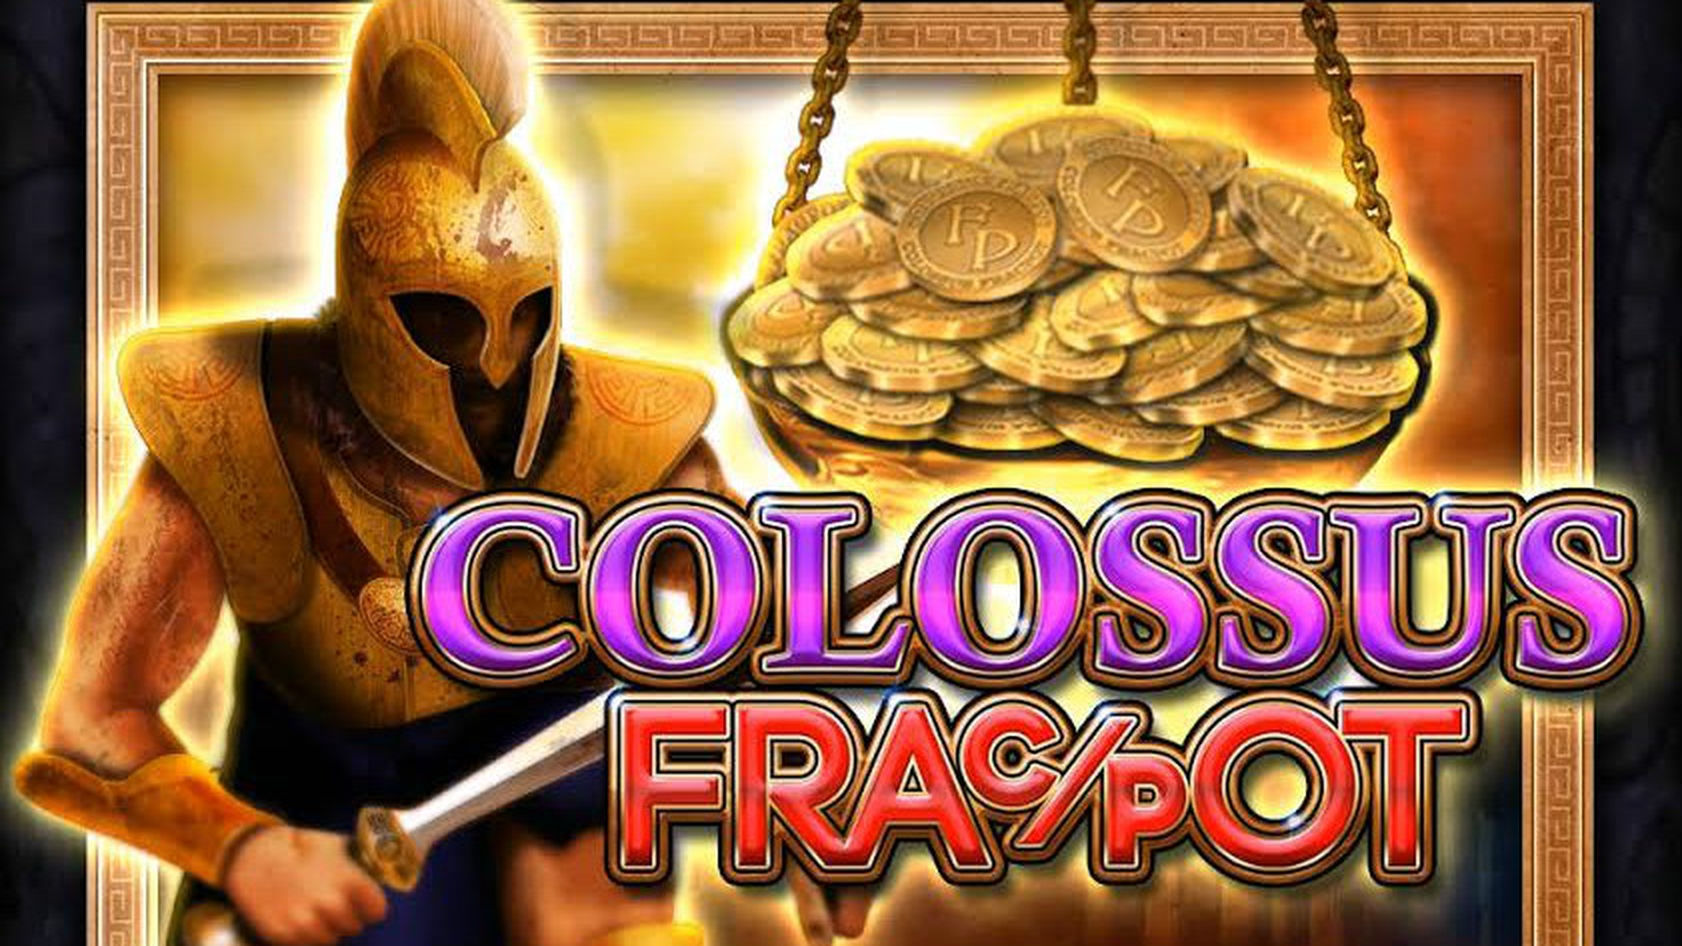 The Colossus Fracpot Online Slot Demo Game by CORE Gaming